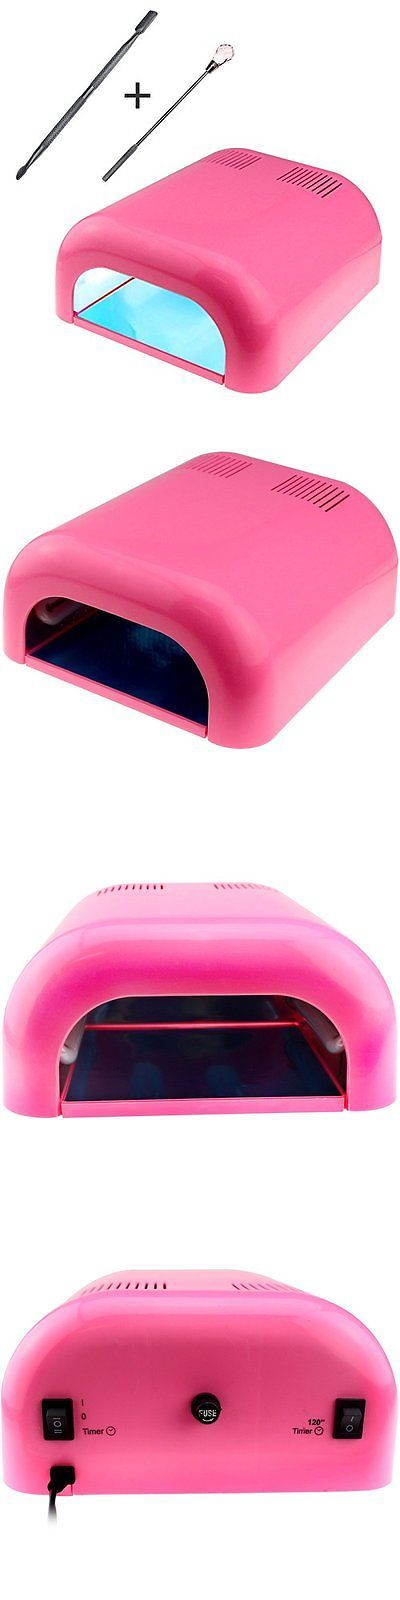 Nail Dryers and UV LED Lamps: Professional Uv Nail Dryer Machine 36 Watt Light Lamp Gel Fan Timer Salon Safe BUY IT NOW ONLY: $87.13